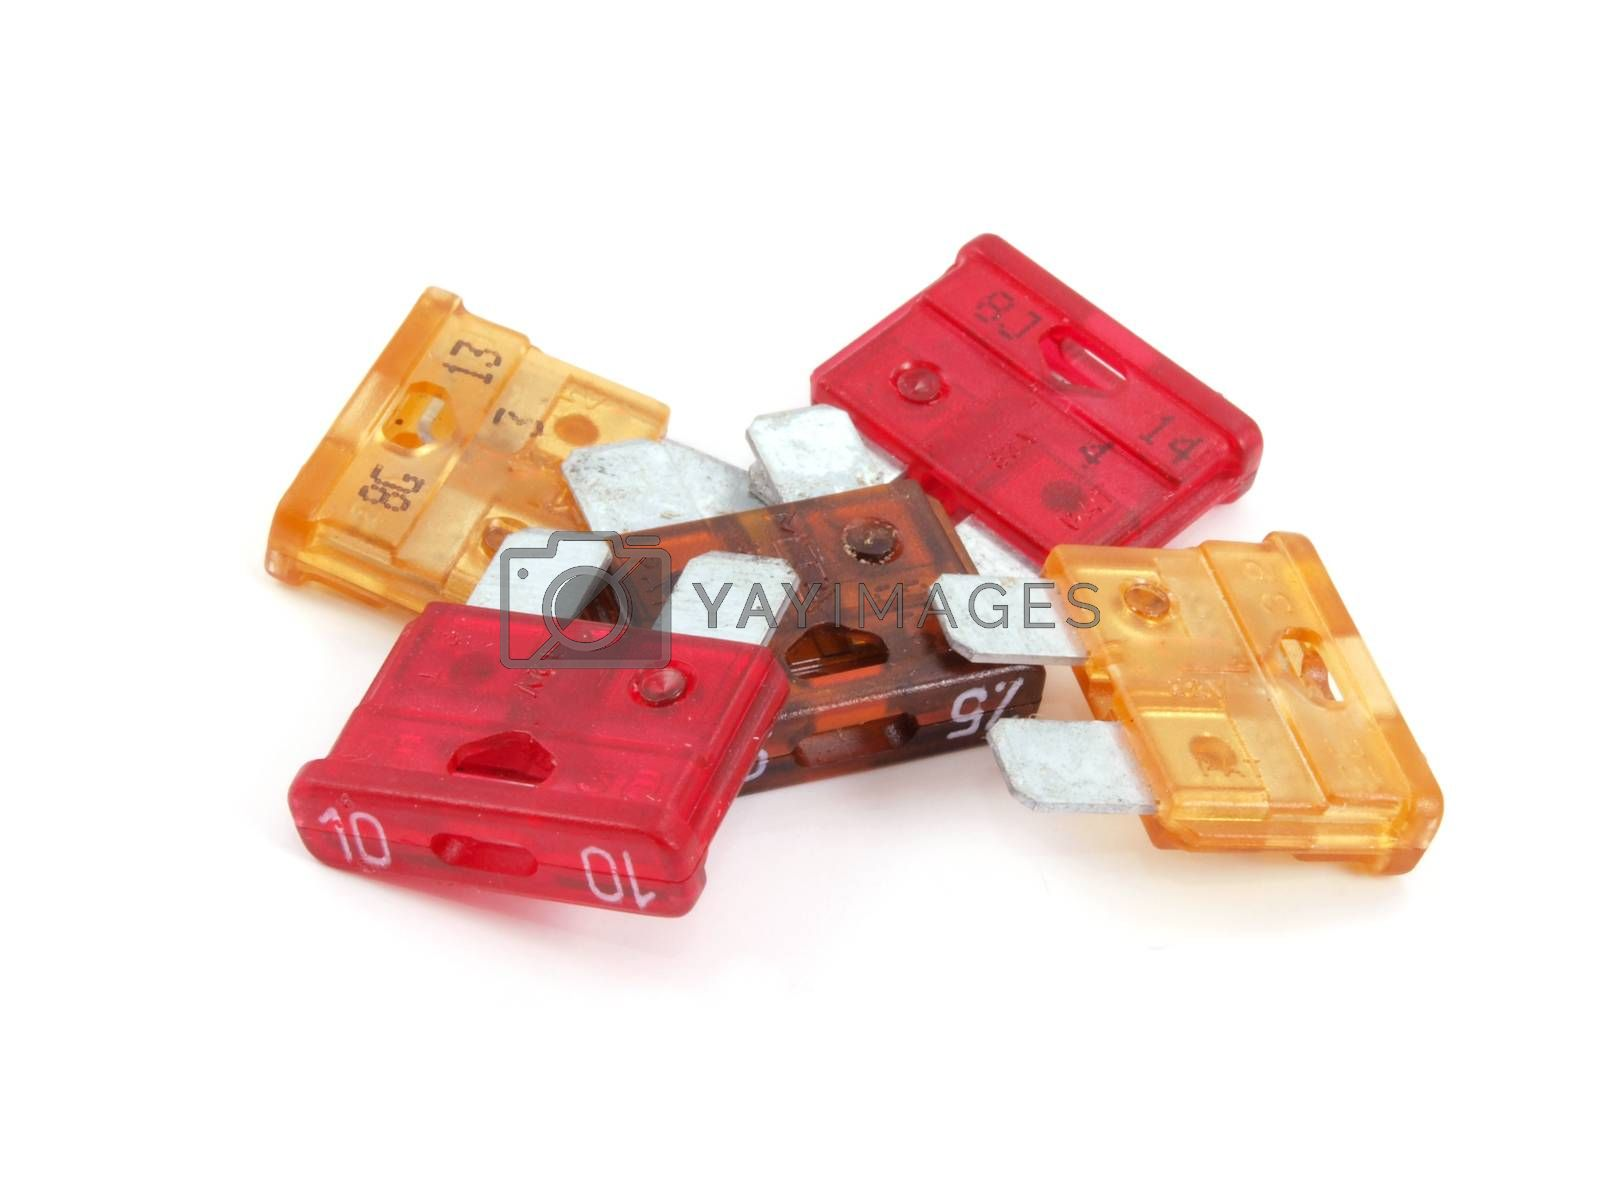 Assorted fuses as used in the  automotive industry.